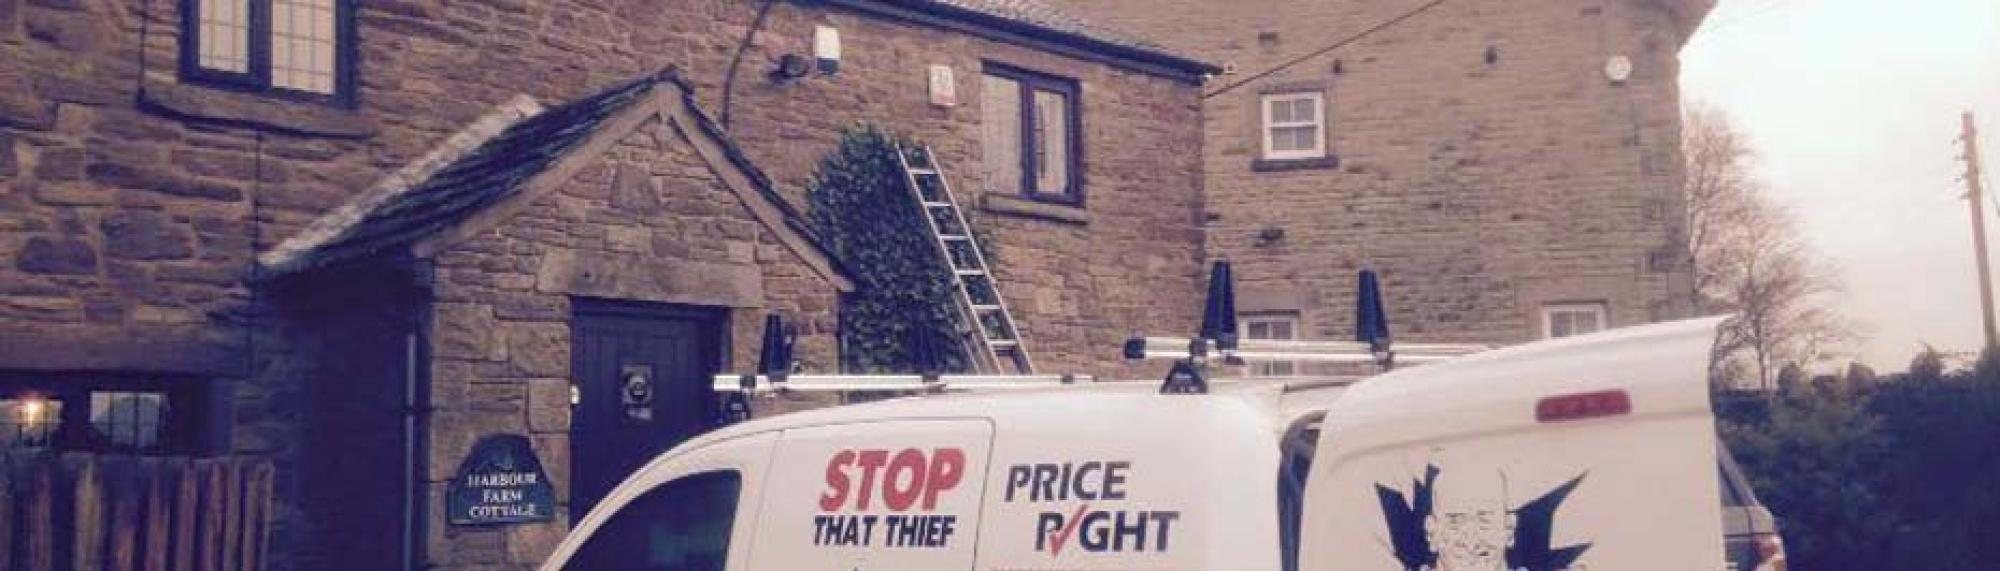 Price Right Alarms And Security Systems